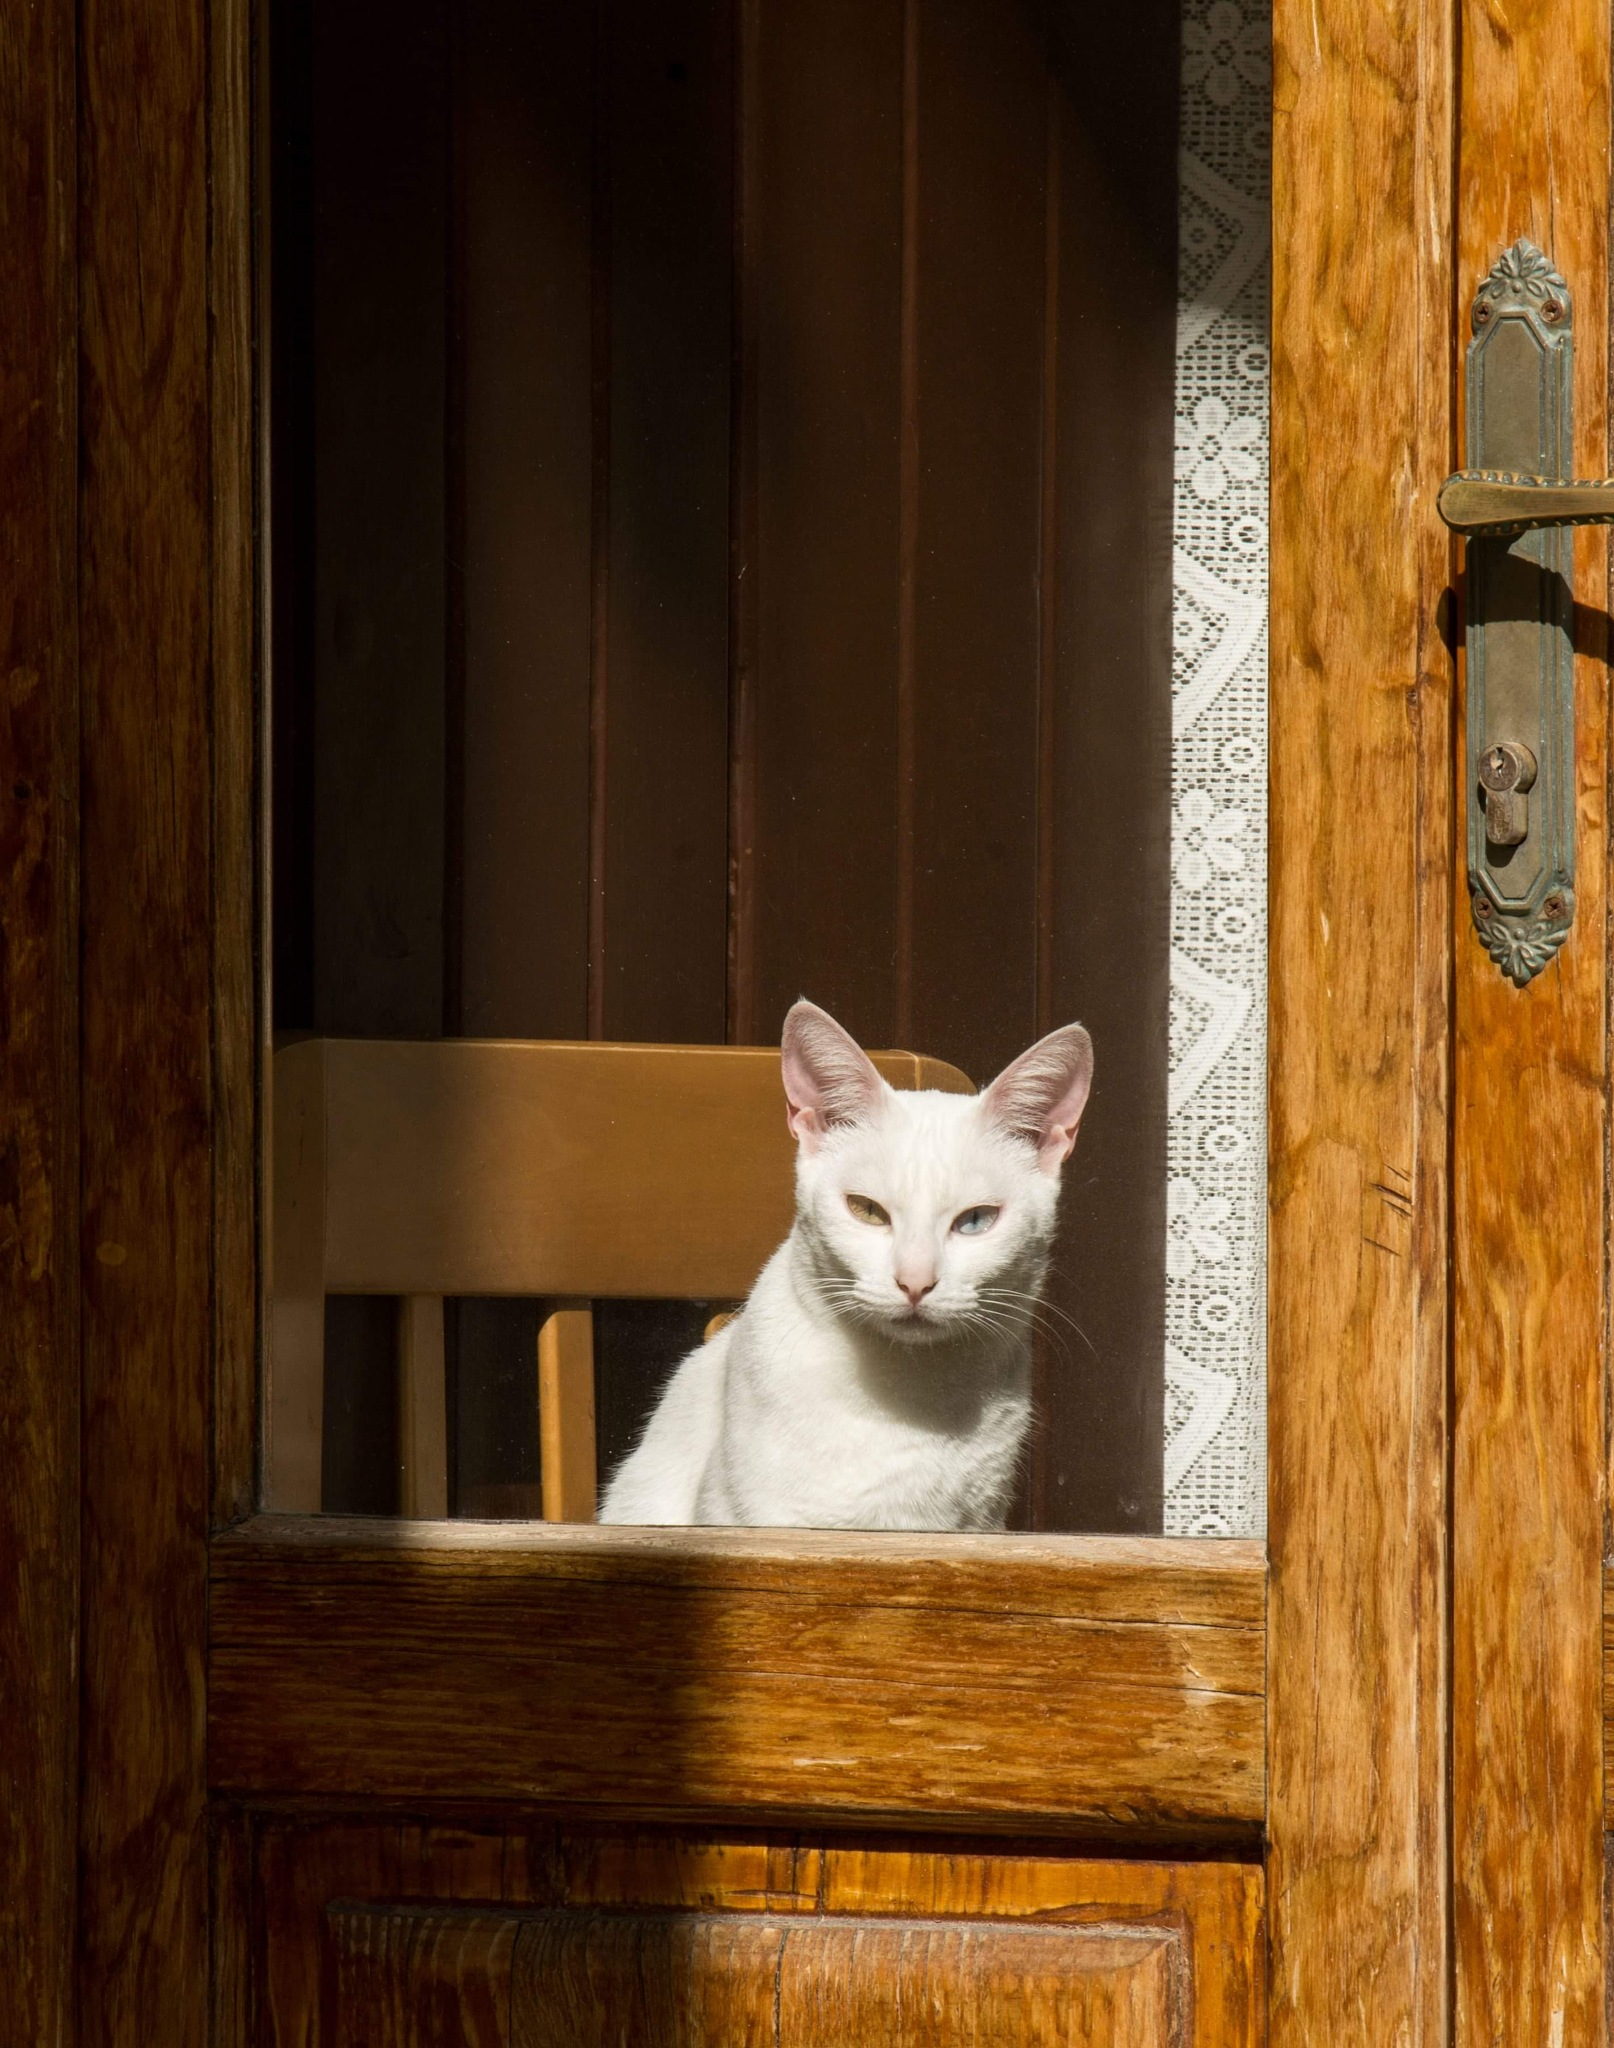 cat at the window by Nicola Magaletti